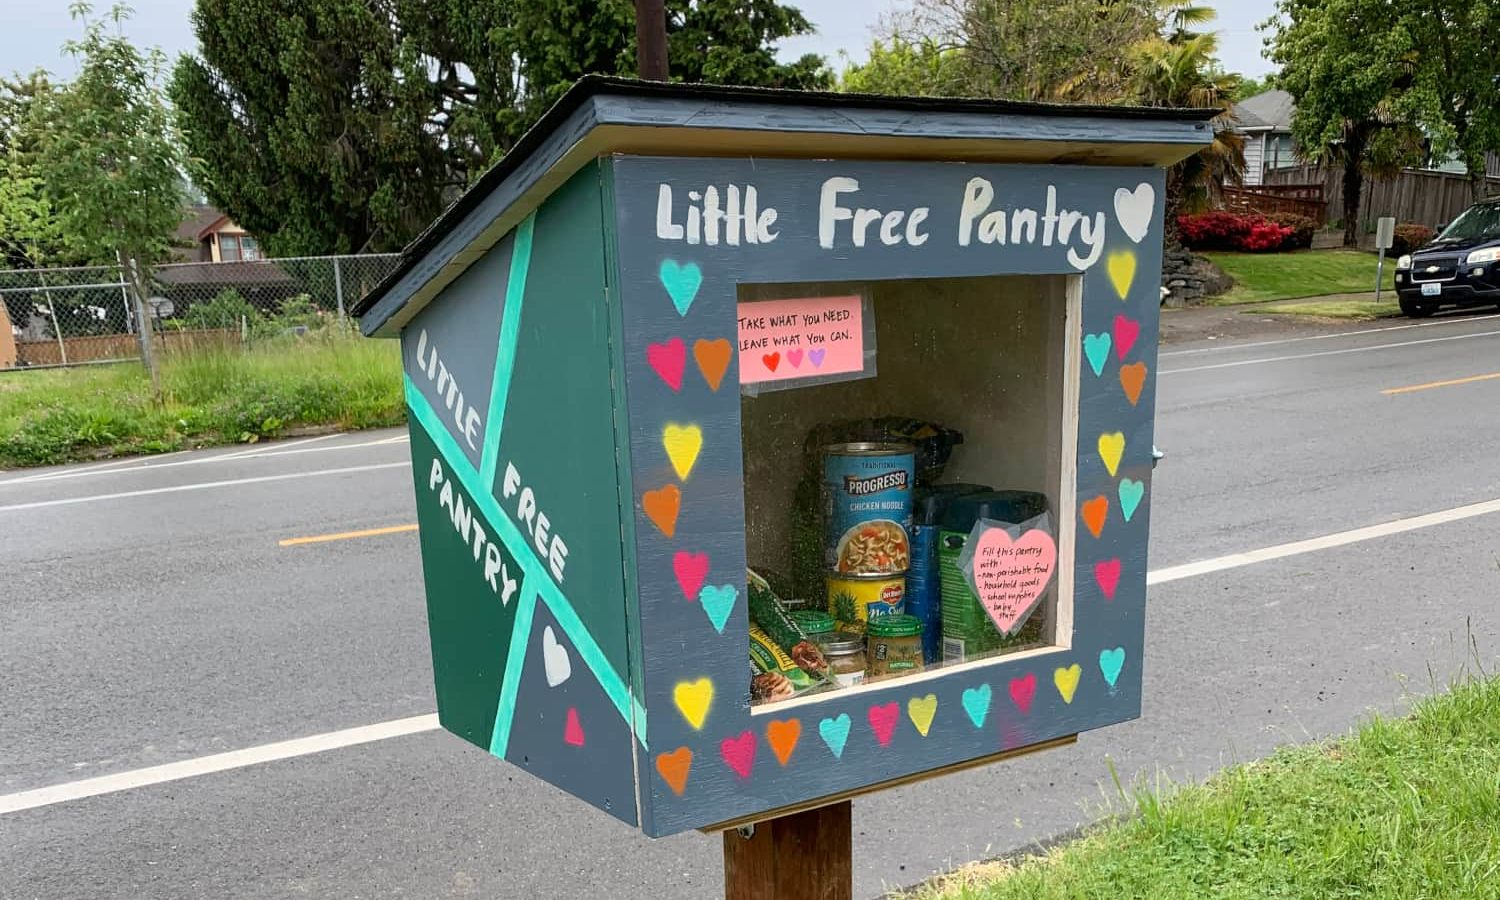 Communities are filling Little Free Libraries with pantry goods to help keep neighbors from going hungry during the COVID-19 pandemic.